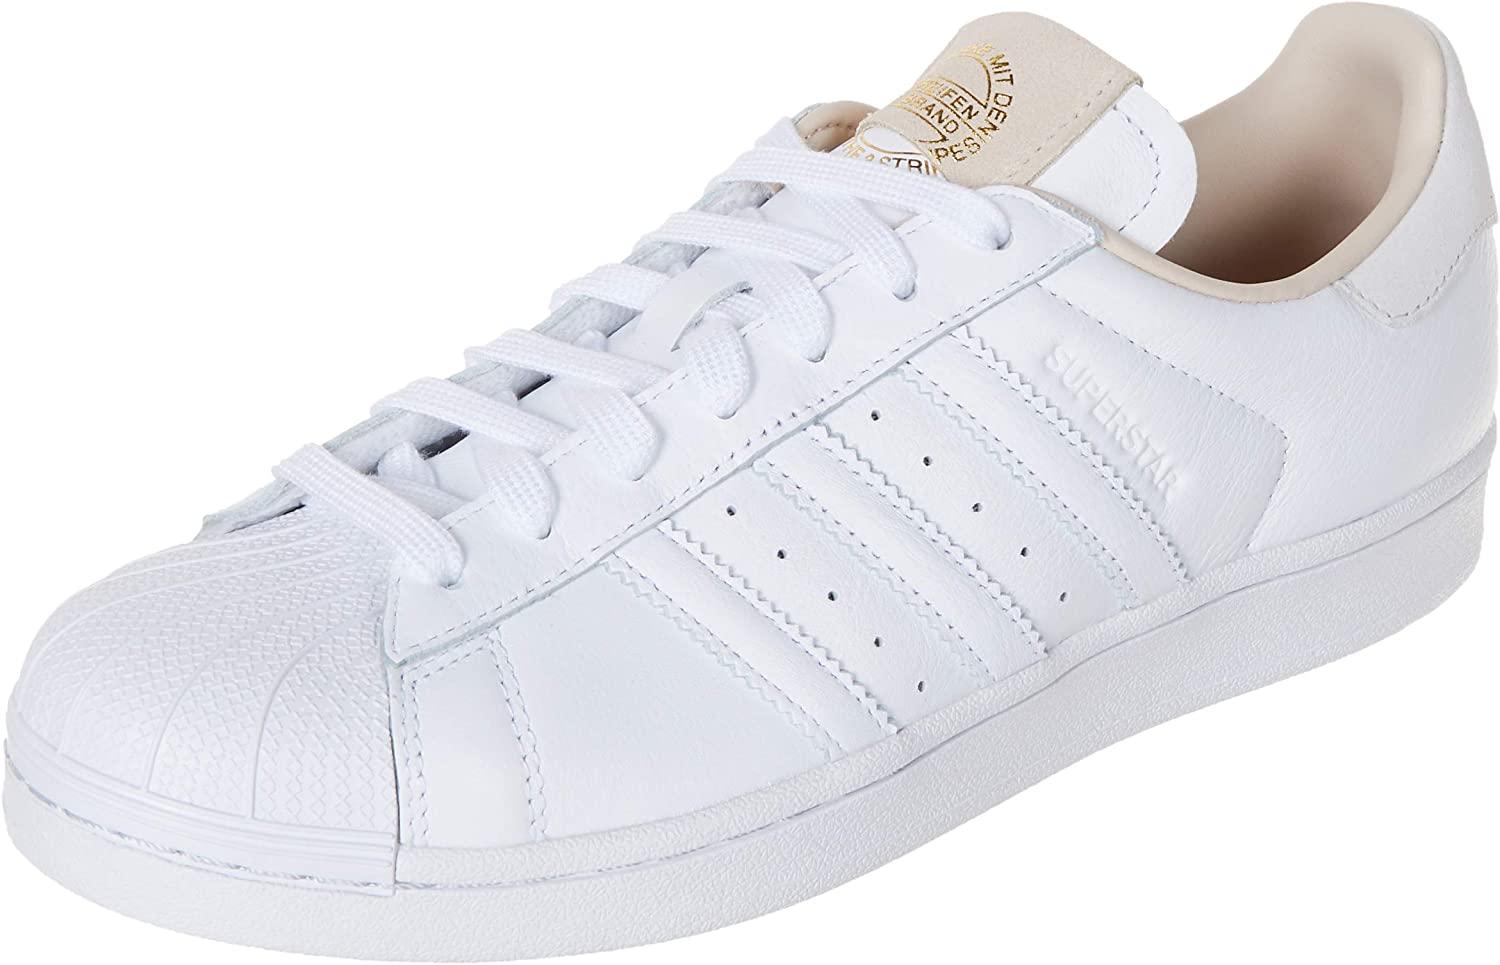 Adidas Superstar White White Crystal White